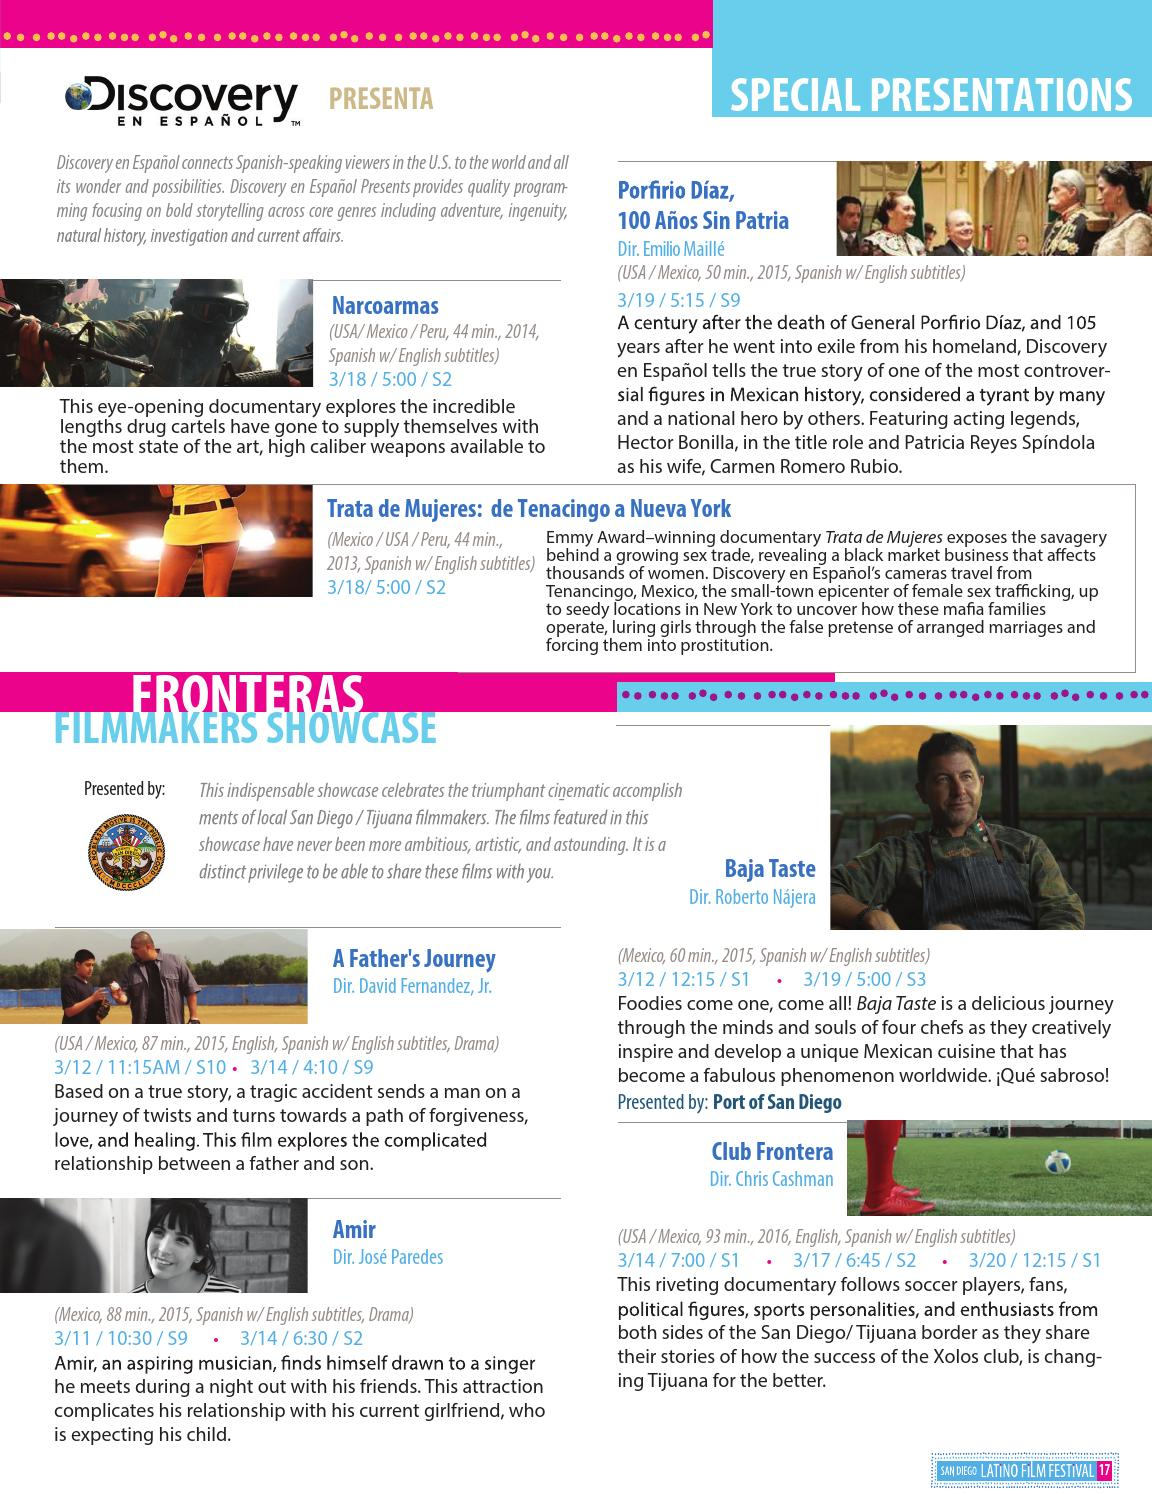 San Diego Latino Film Festival Catalogue 2016 by Ethan